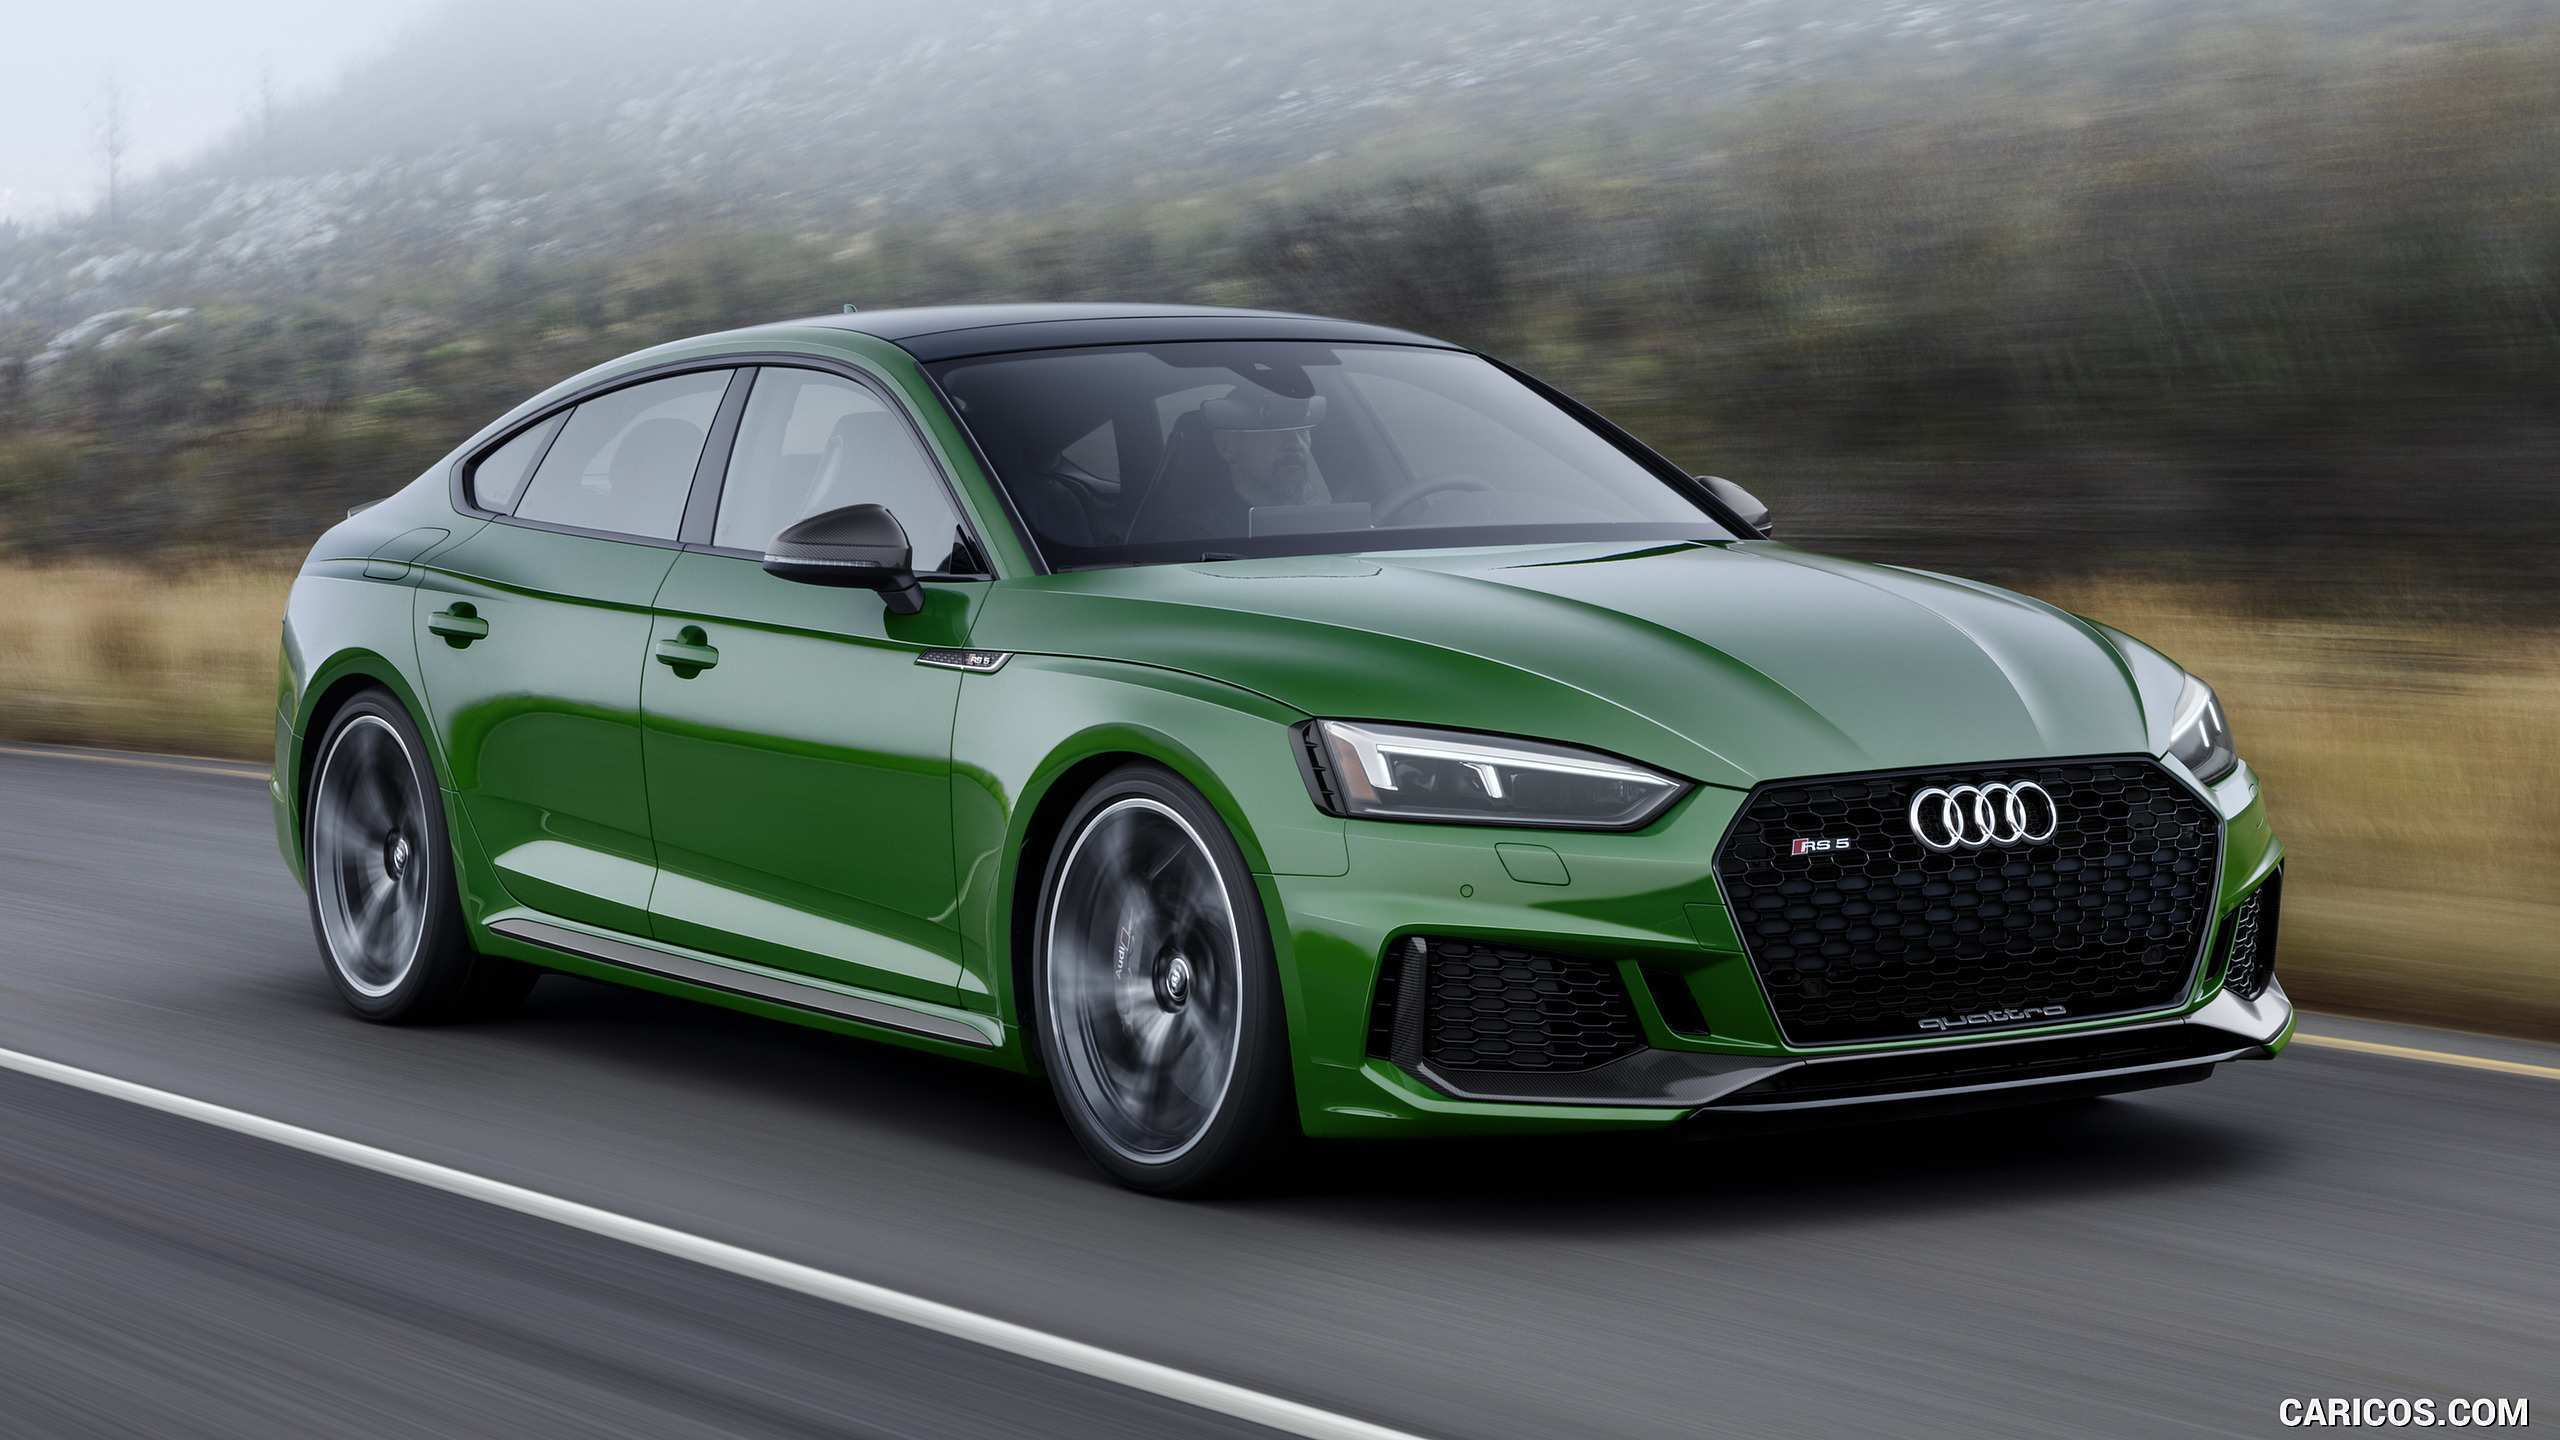 12 New 2019 Audi Green Reviews with 2019 Audi Green